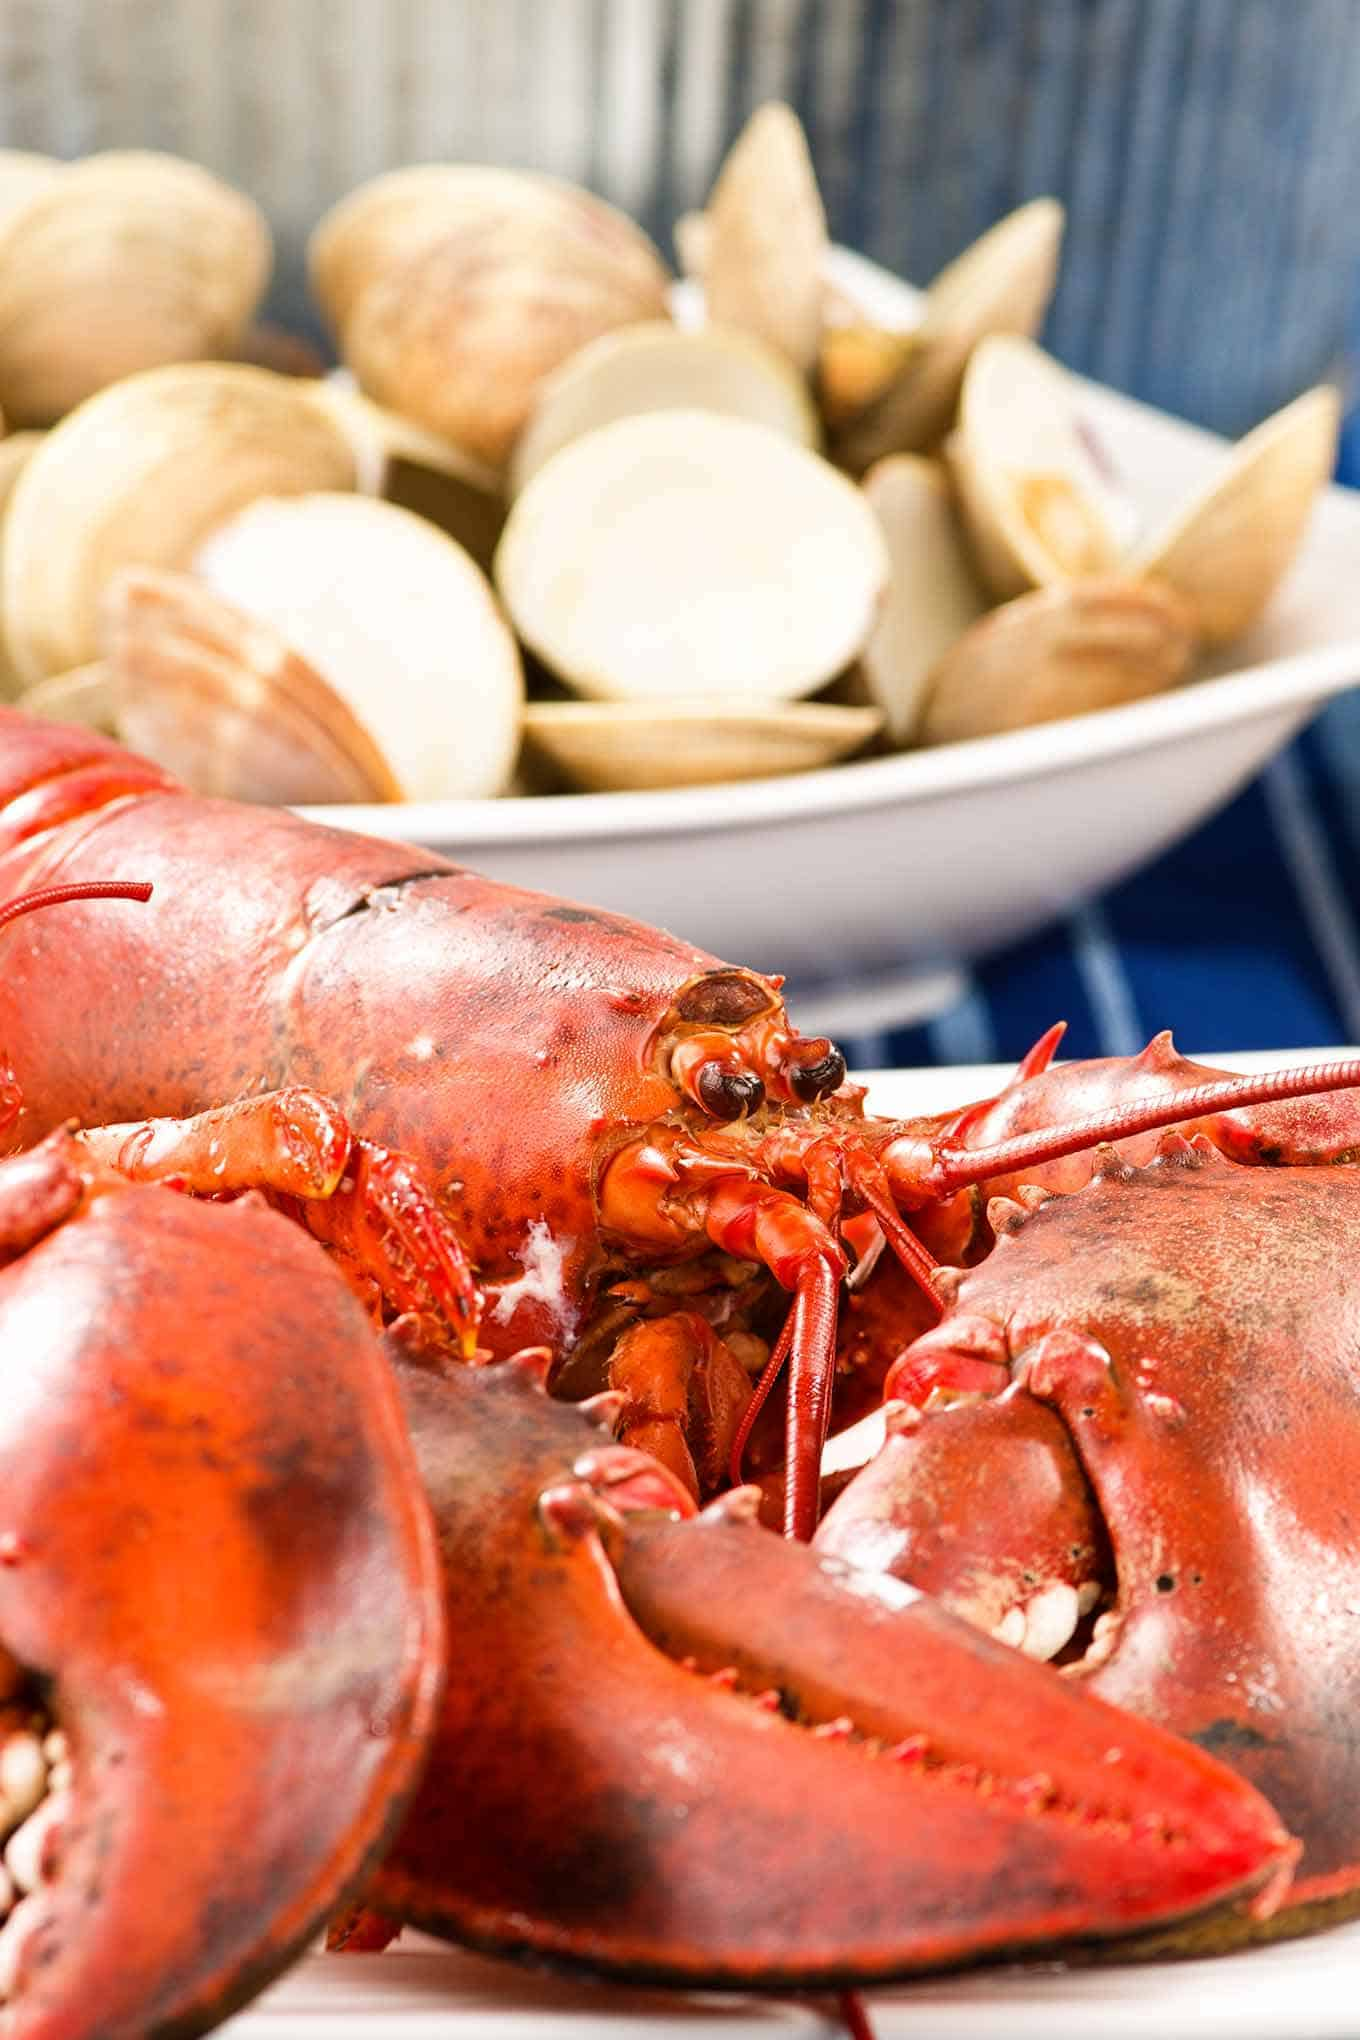 Whole cooked lobster on a plate with a bowl of steamed littleneck clams in the background.